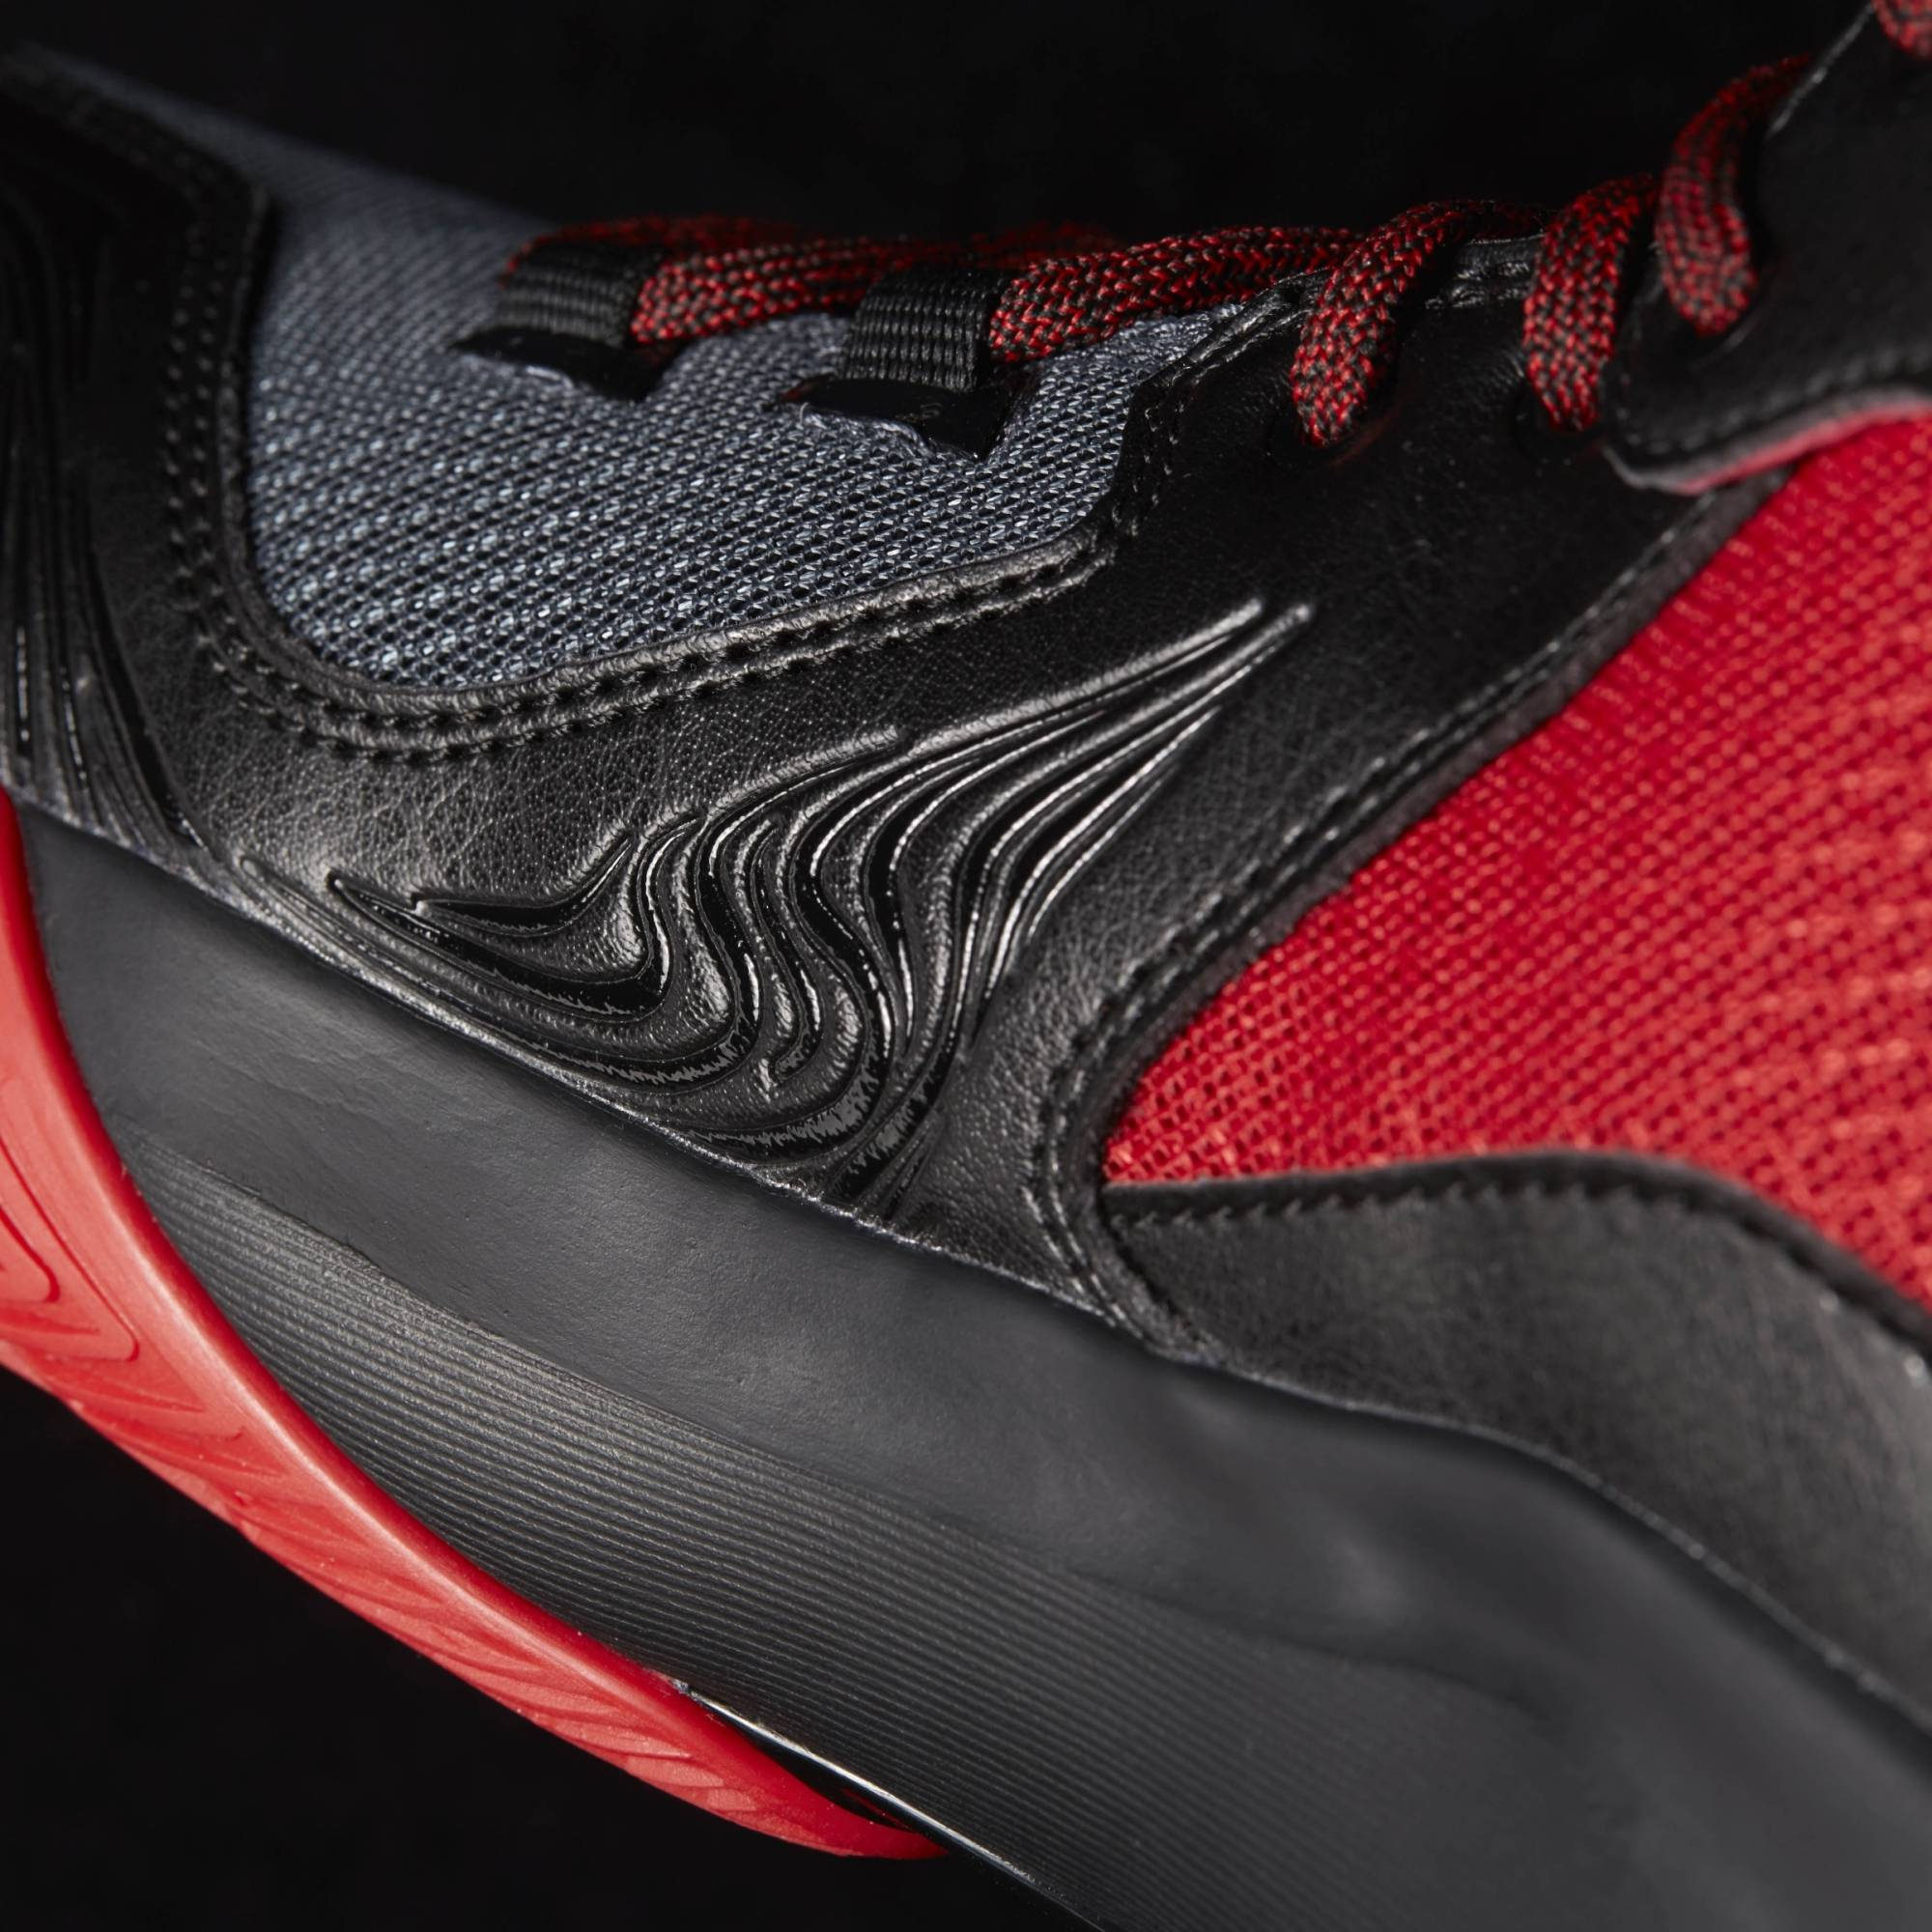 Adidas D-Rose 773 V Basketball Boot/Shoe - Black/Red